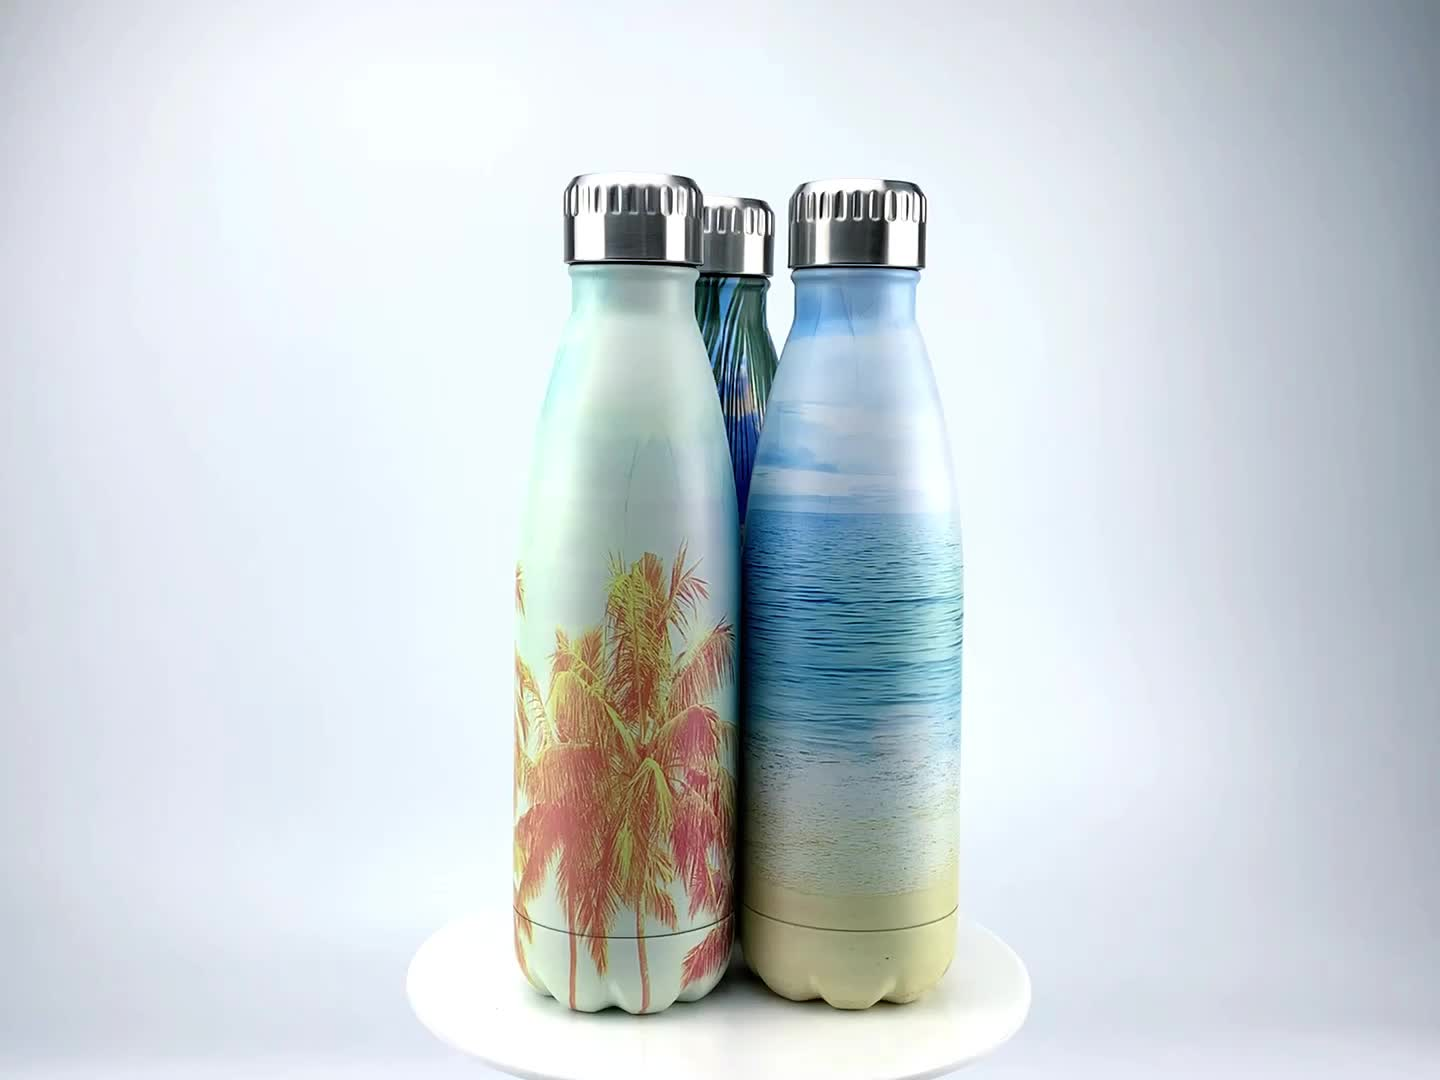 Factory Wholesale 17oz Insulated Water Bottle Double Wall Vacuum Stainless Steel Bottle Leak Proof Keeps Hot and Cold Drinks